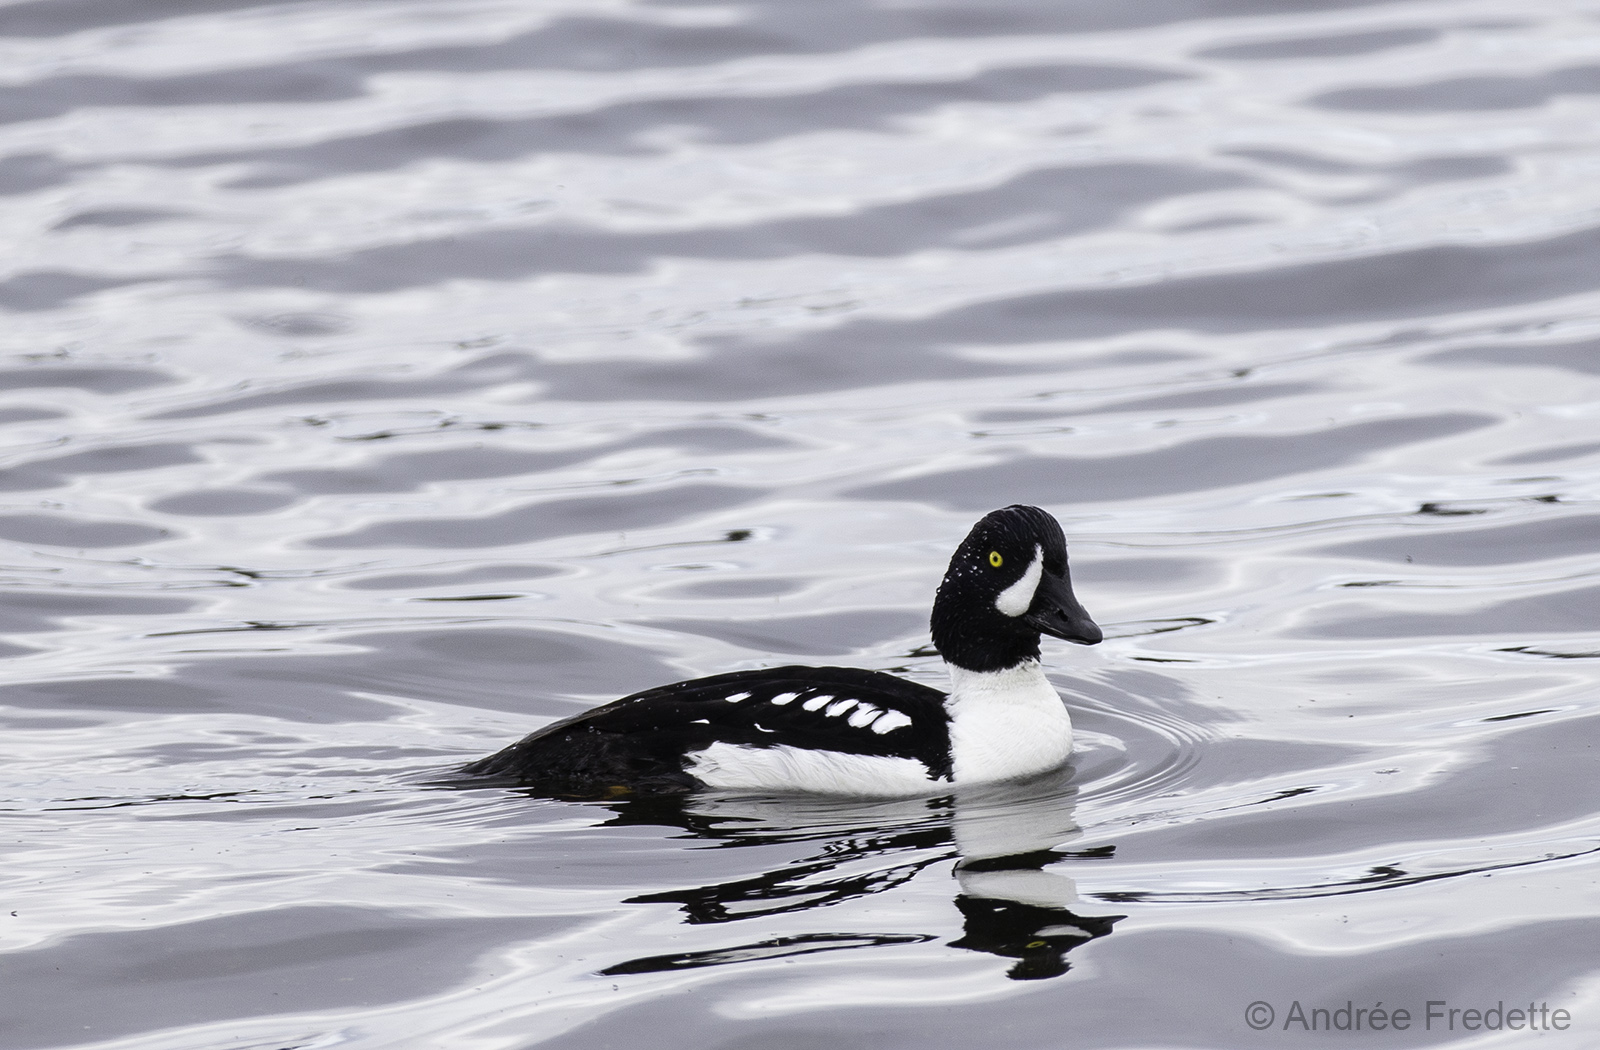 Barrow's Goldeneye (Bucephala islandica). Photo by Andrée Fredette